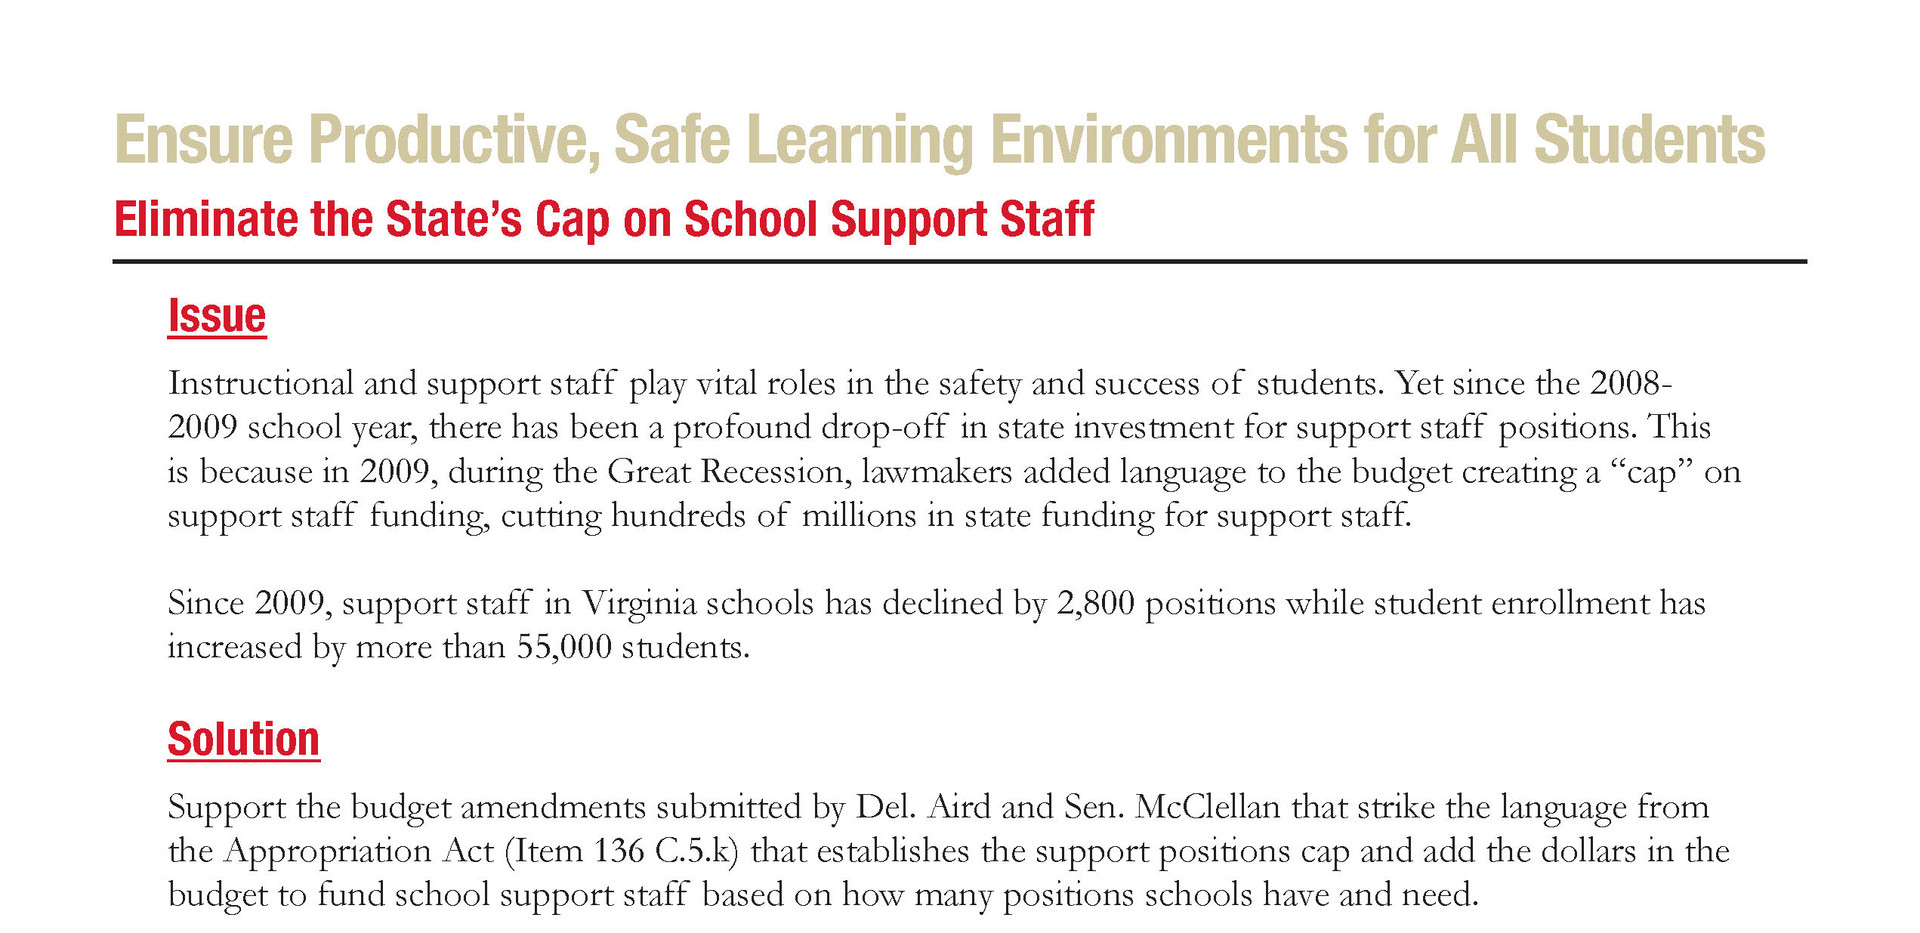 Eliminate the State's Cap on School Support Staff